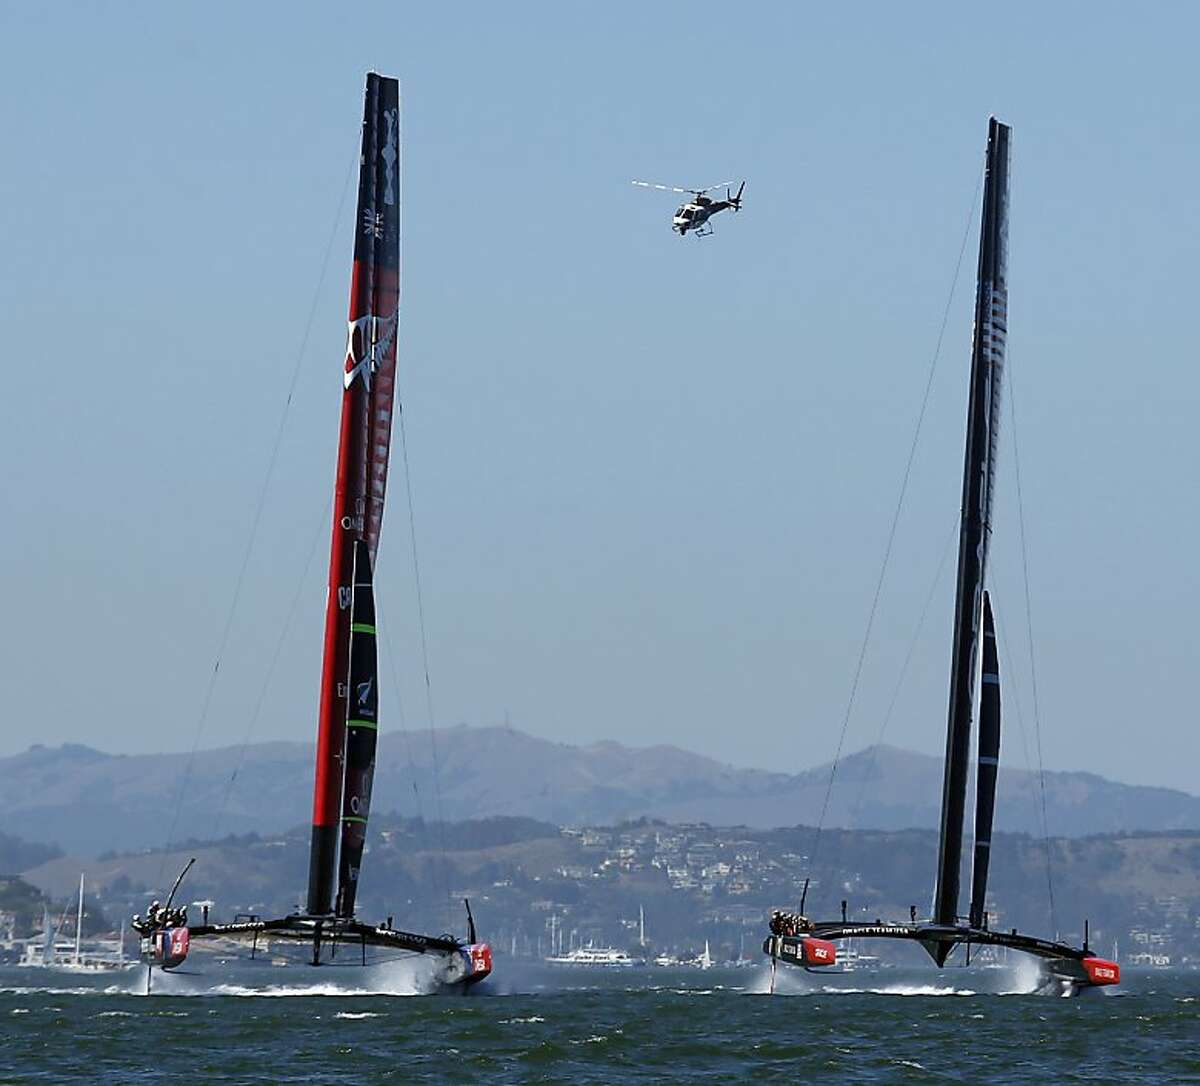 Oracle Team USA (right) and Emirates Team New Zealand boats compete towards the first marker during Race 2 of the America's Cup Finals on Saturday, September 7, 2013 in San Francisco, Calif.